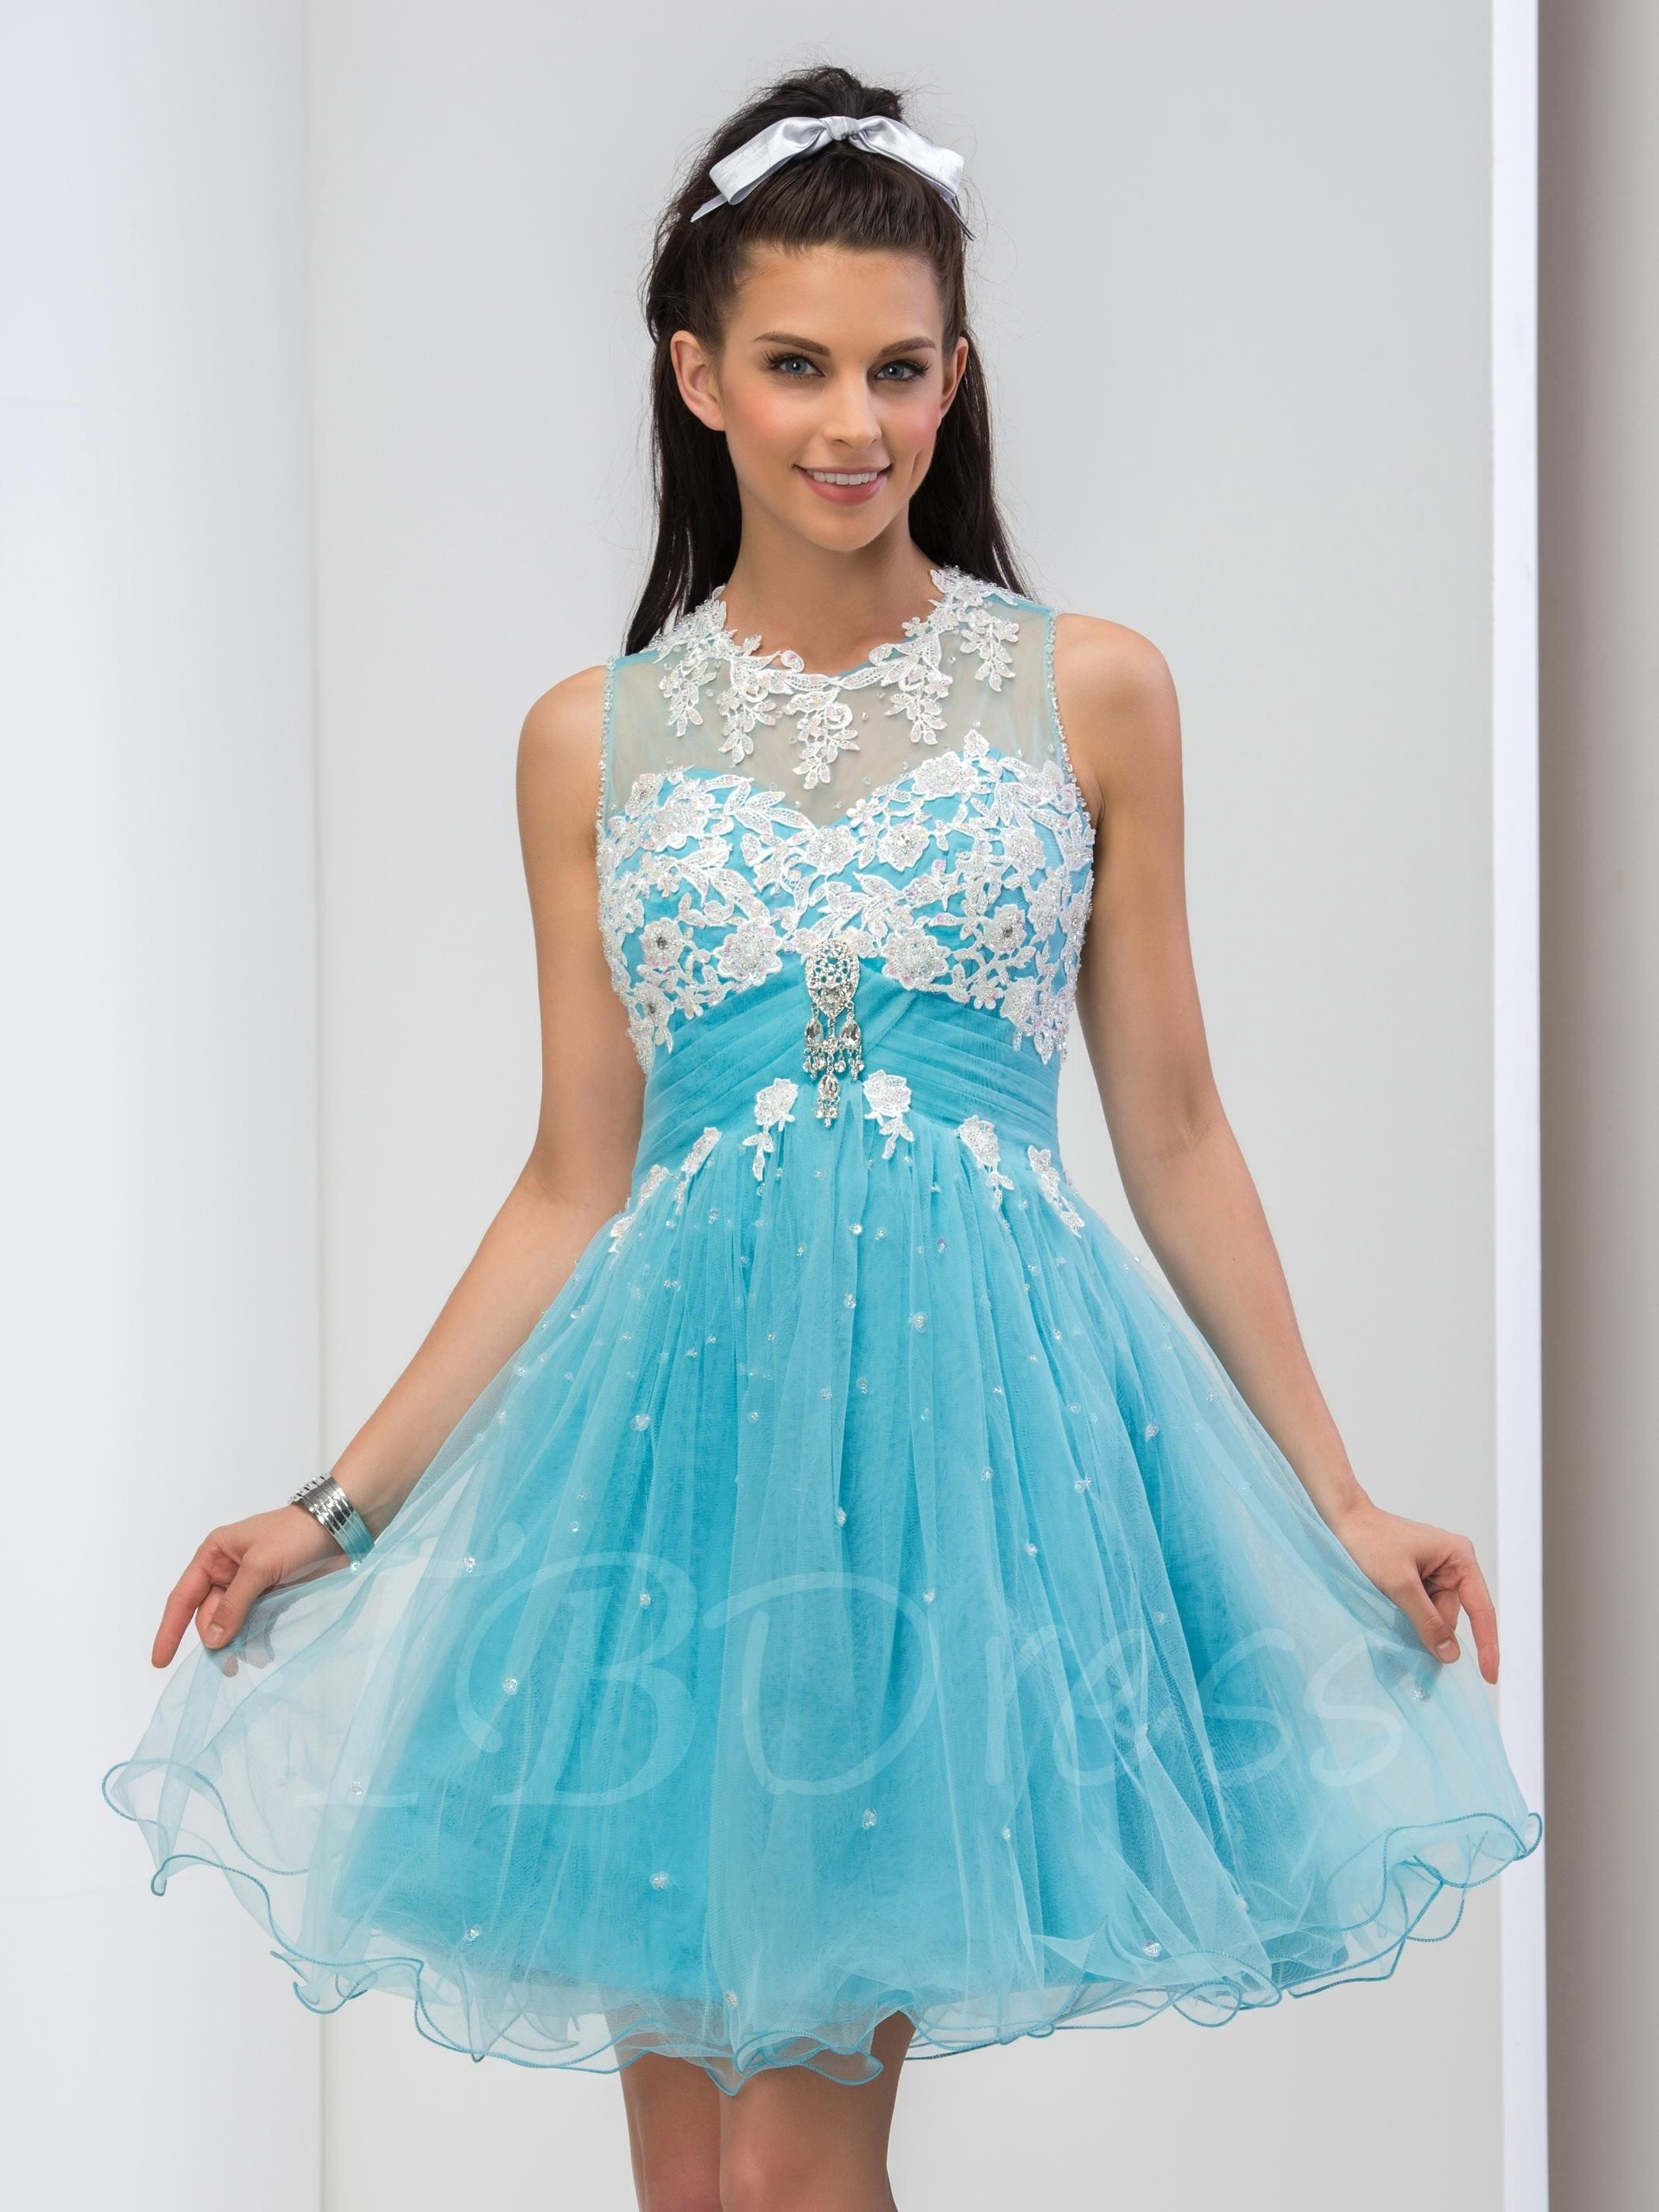 cc77ed3eca0  TBDress -  TBDress Jewel Neck A-Line Appliques Beaded Crystal Short Prom  Dress